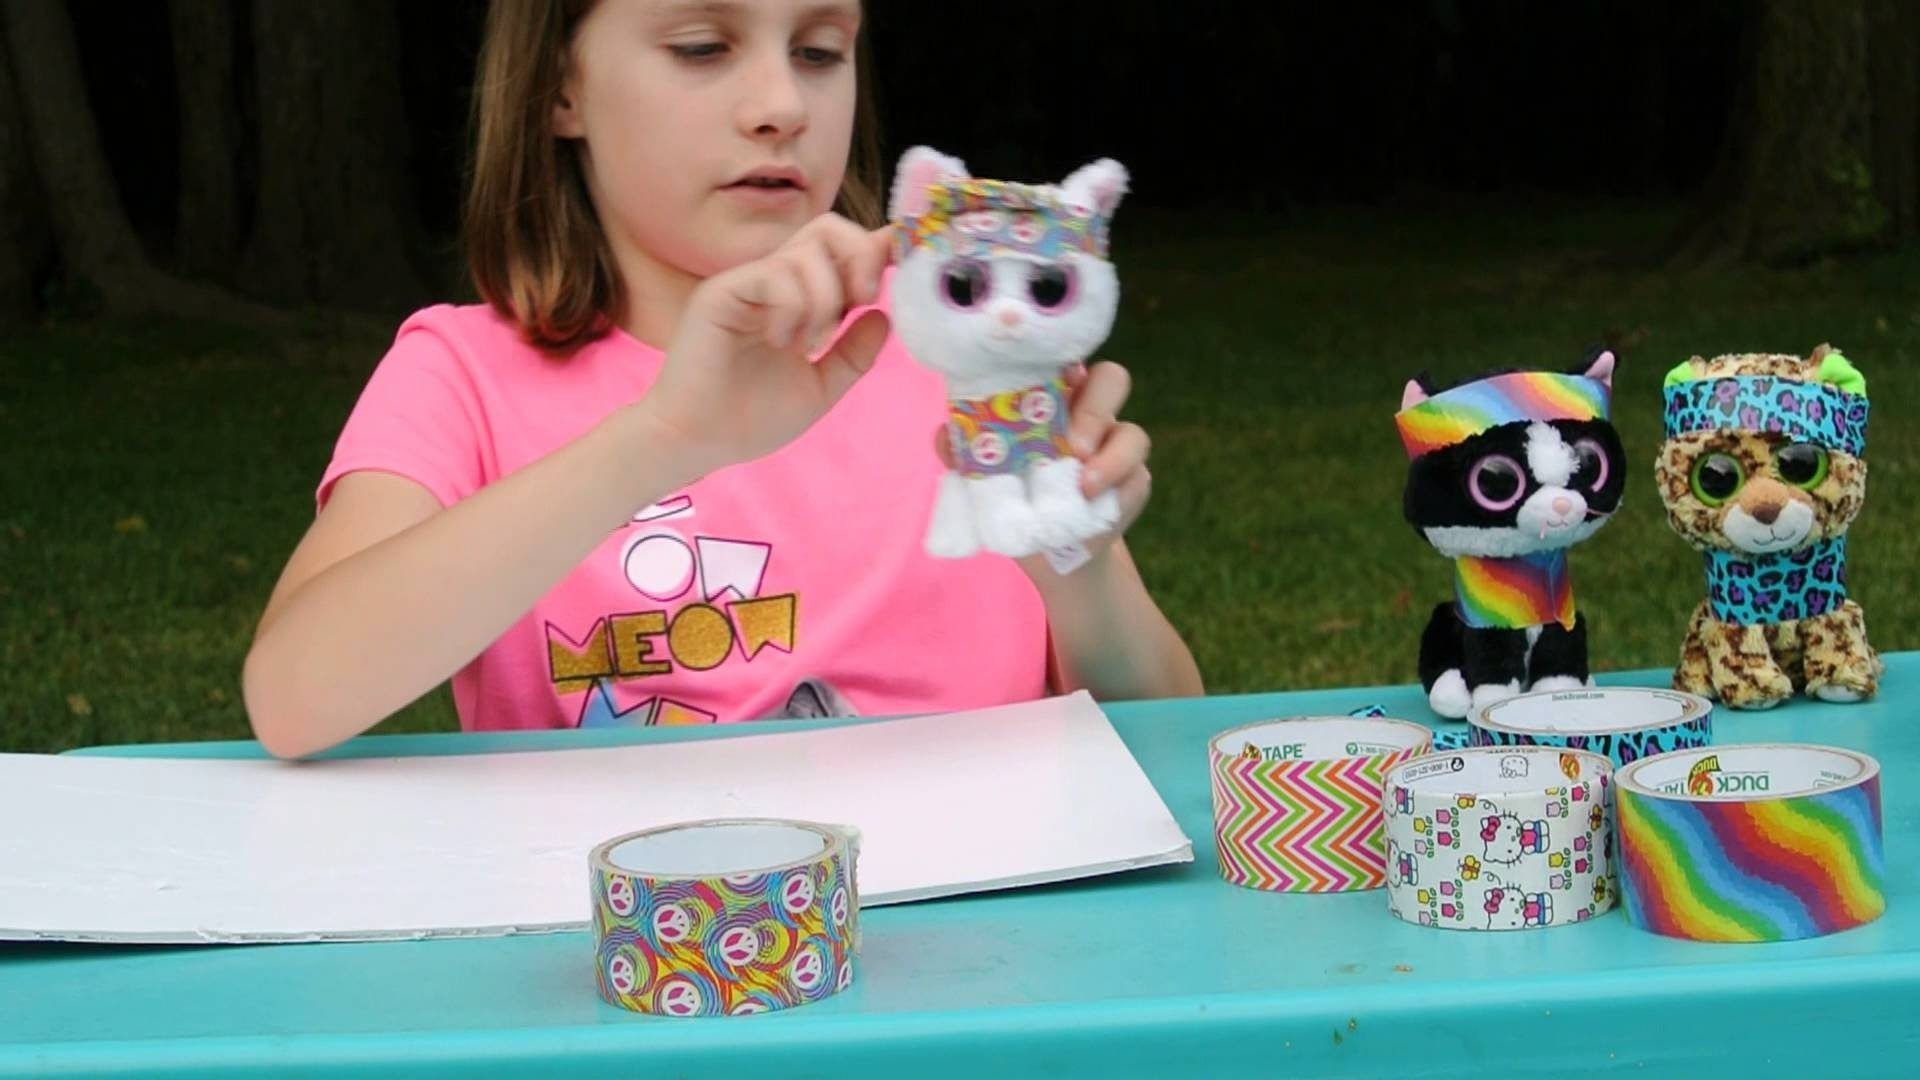 10 Spectacular Duct Tape Ideas For Kids more cool and easy duct tape crafts youtube 1 2020